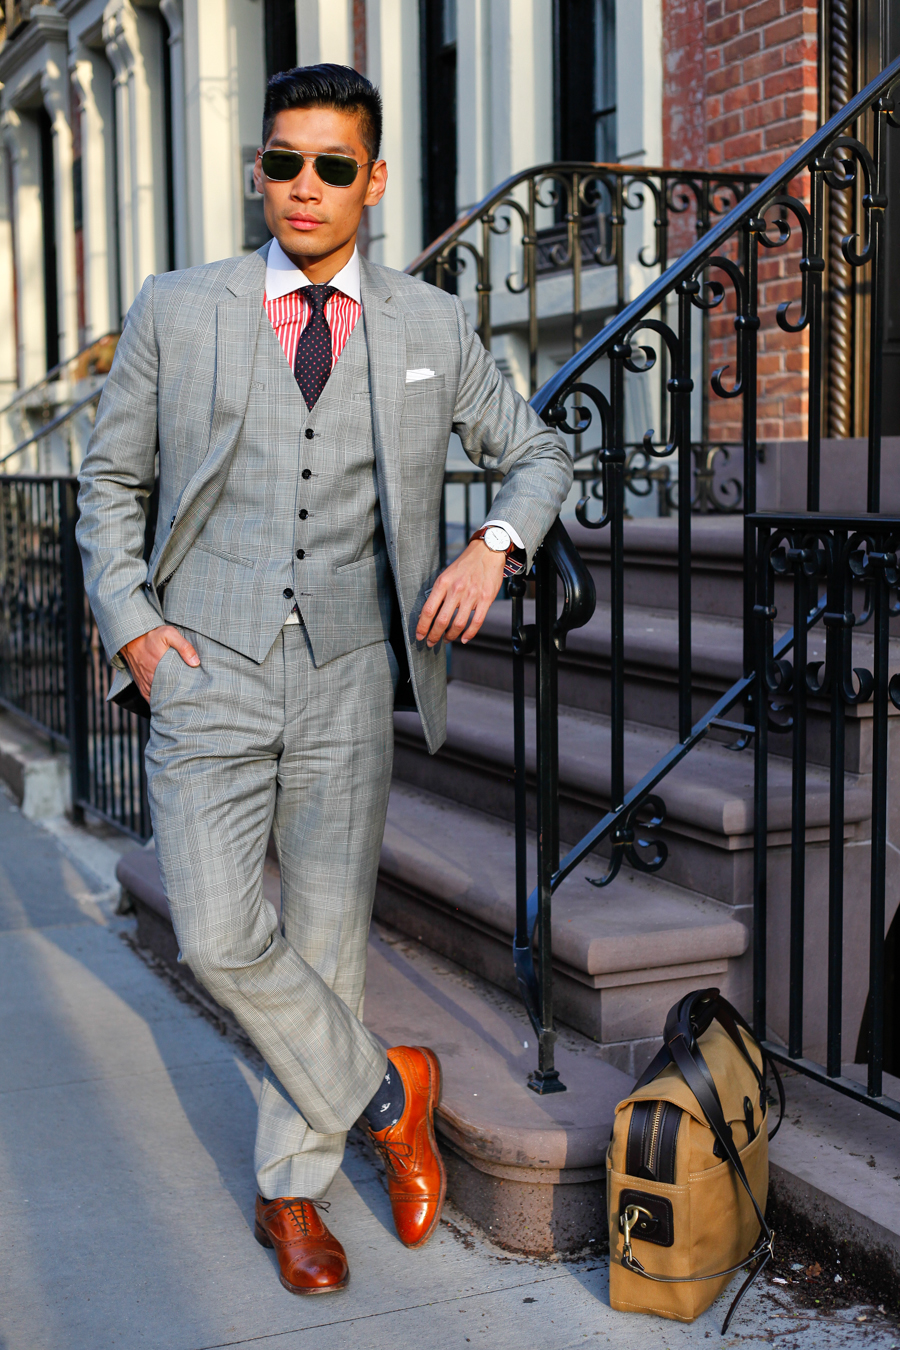 Levitate Style - American Classic, Express Three Piece Suit Two Looks |  J. J. Threads, Allen Edmonds, Filson Briefcase